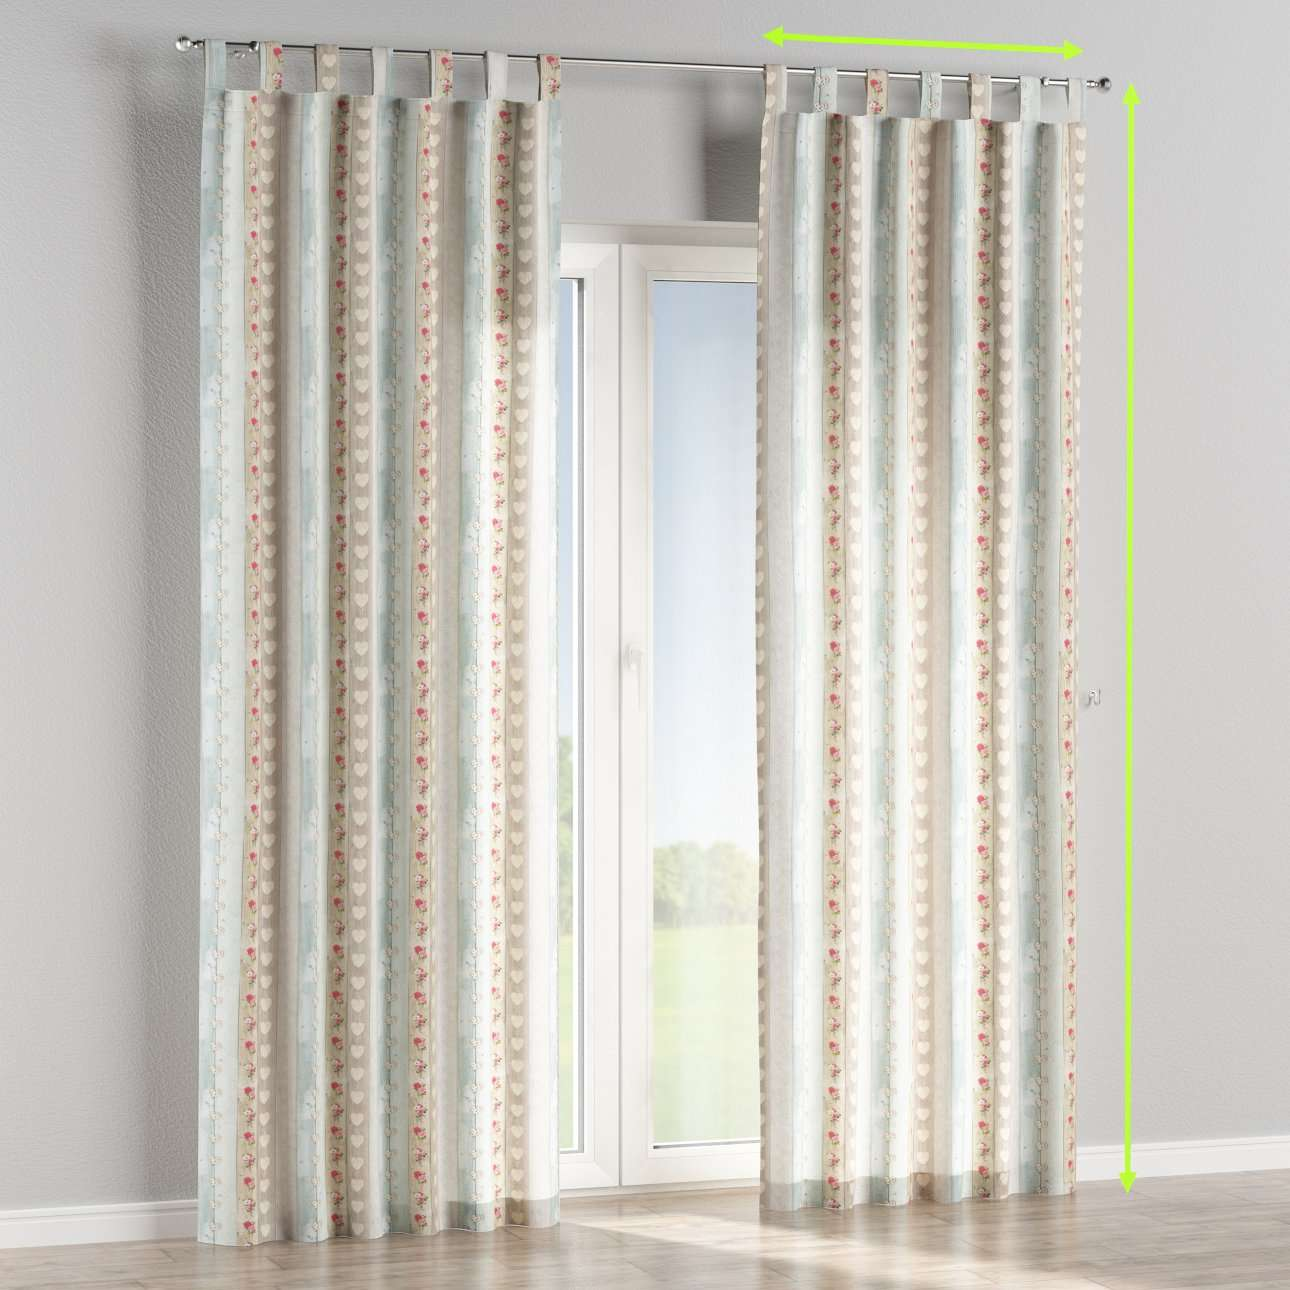 Tab top curtains in collection Ashley, fabric: 140-20